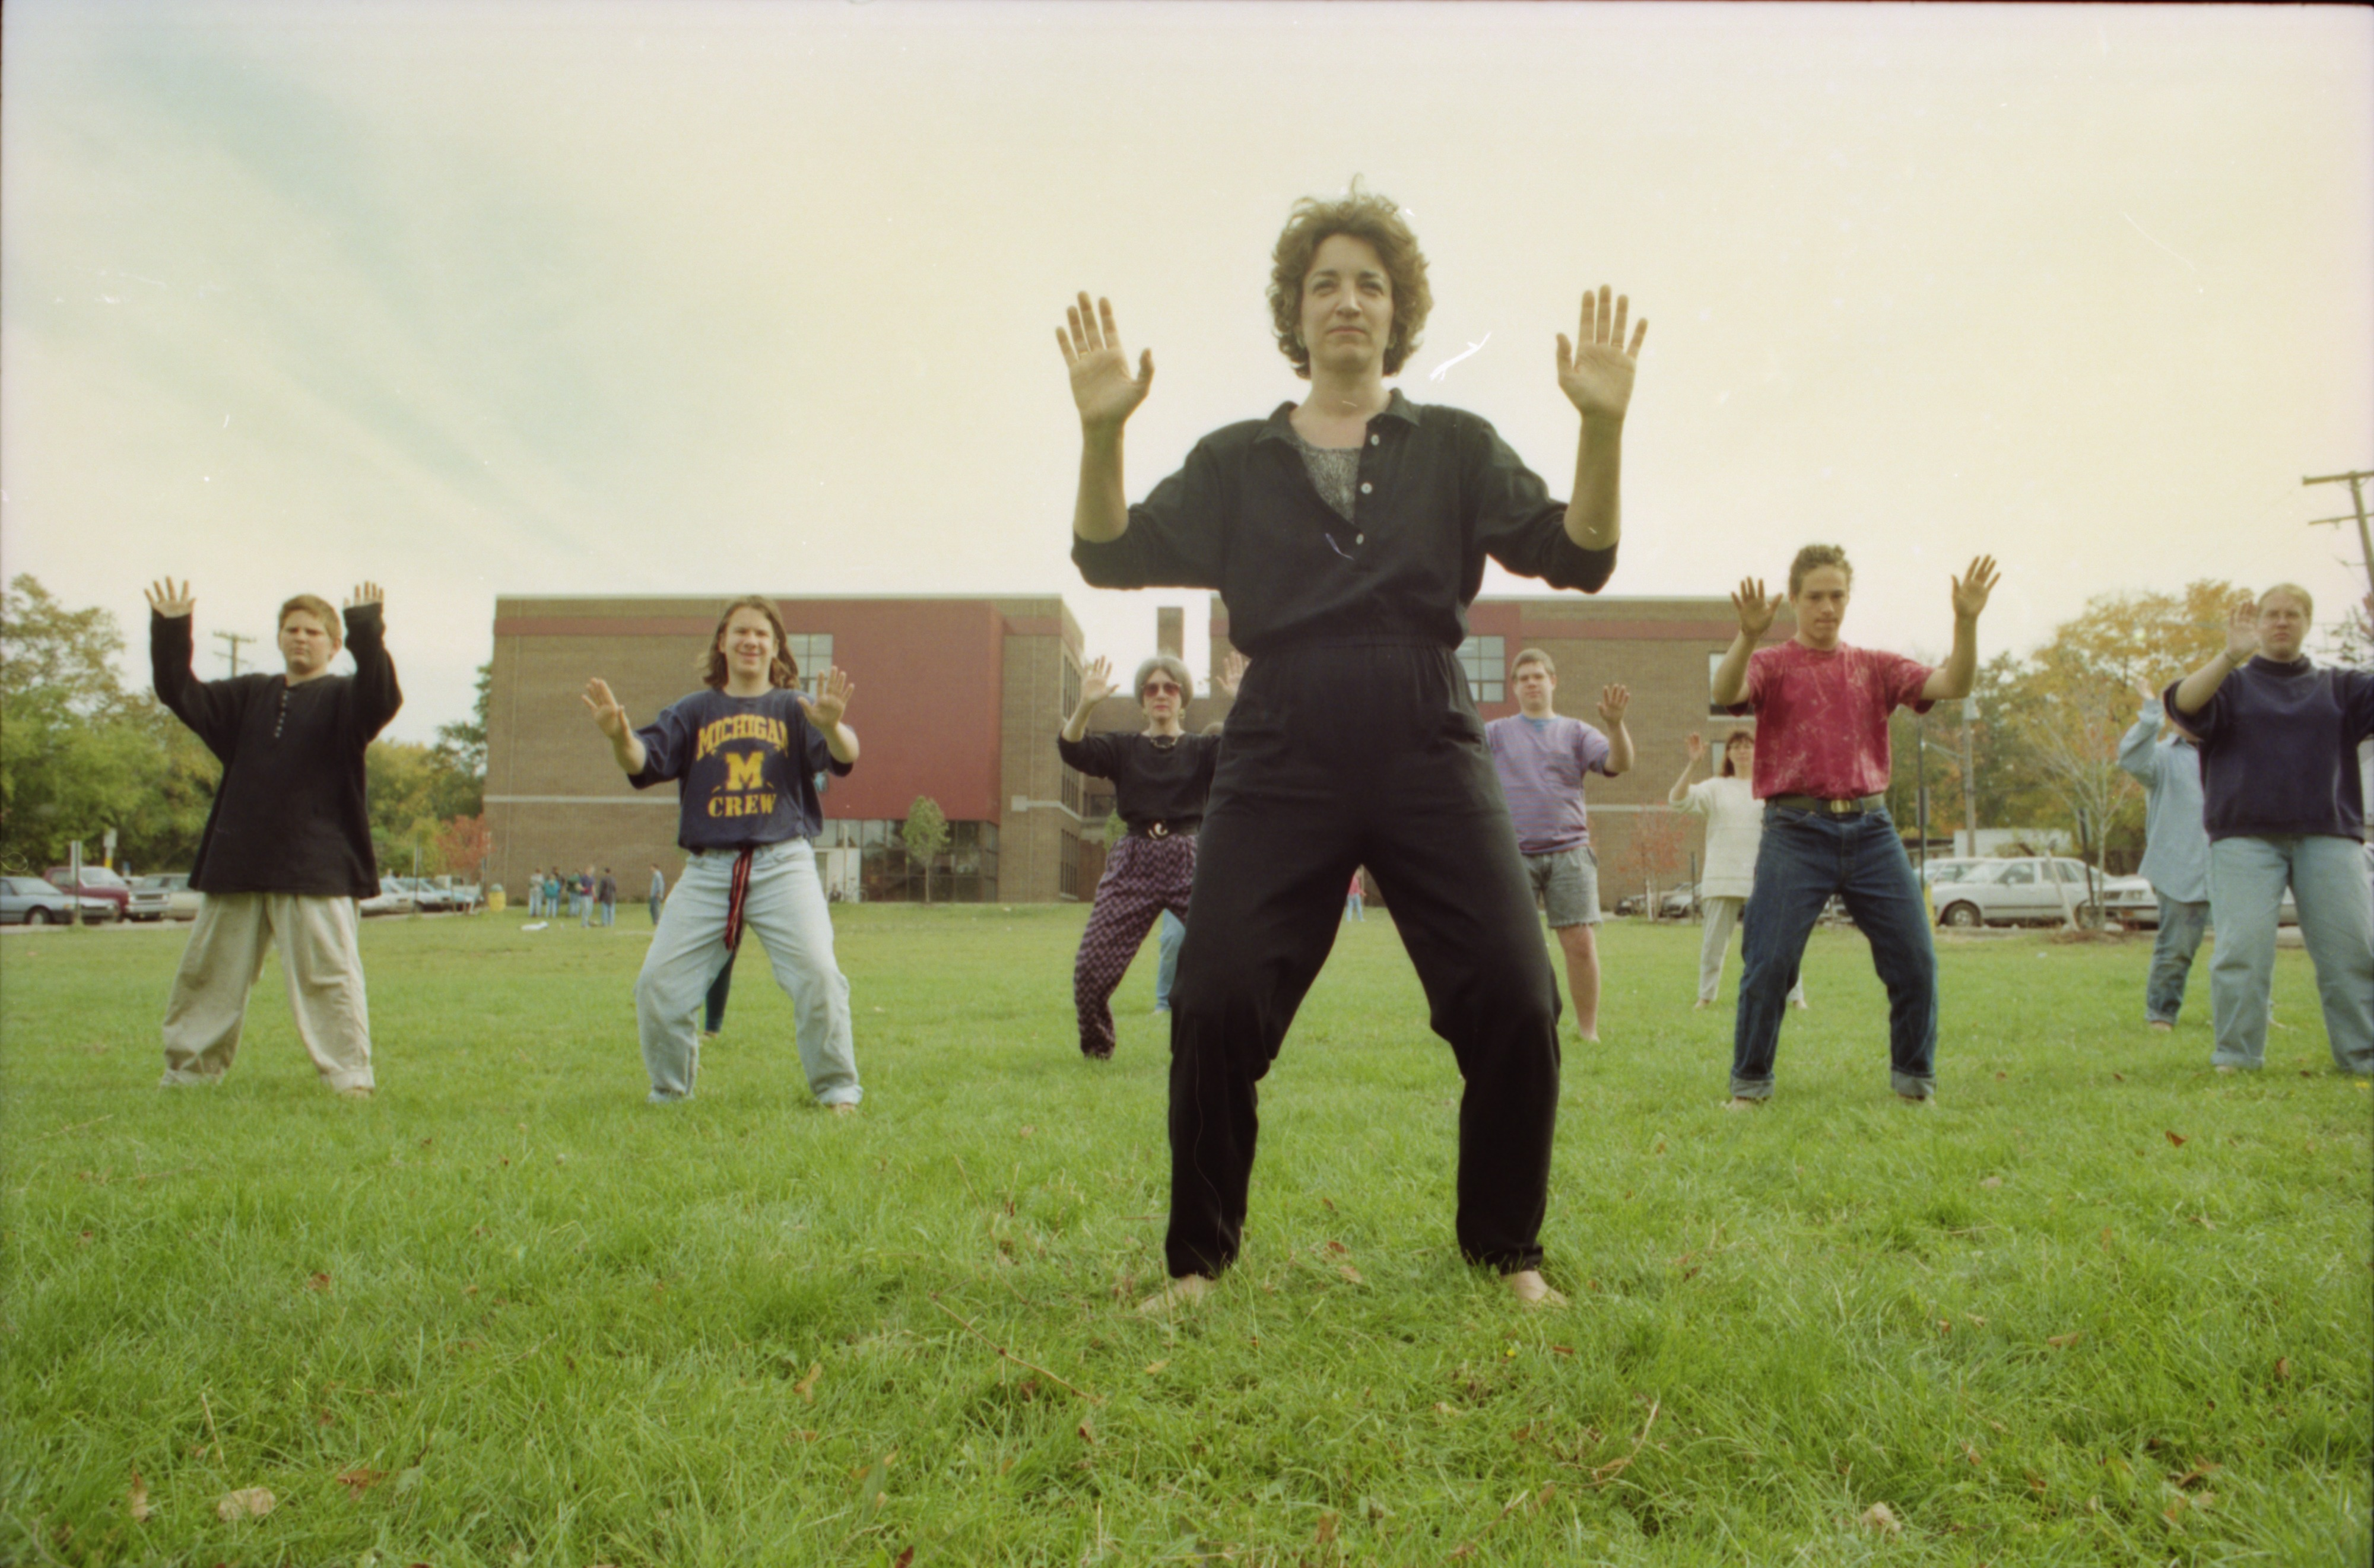 Tasha Lebow teaches tai chi to Community High School students, October 1993 image